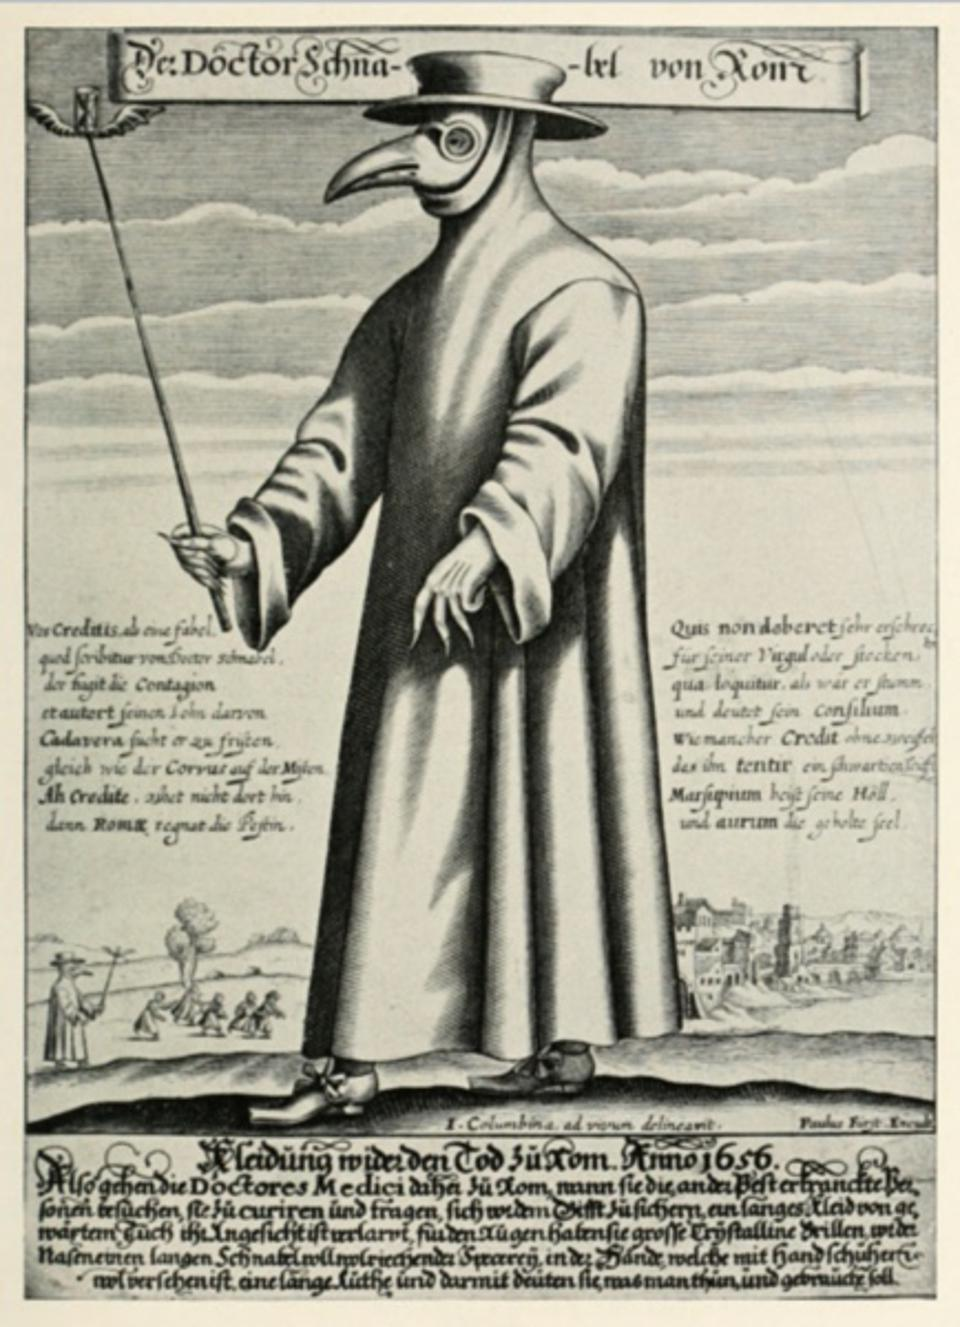 A plague doctor wears a full gown and a bird shaped mask.